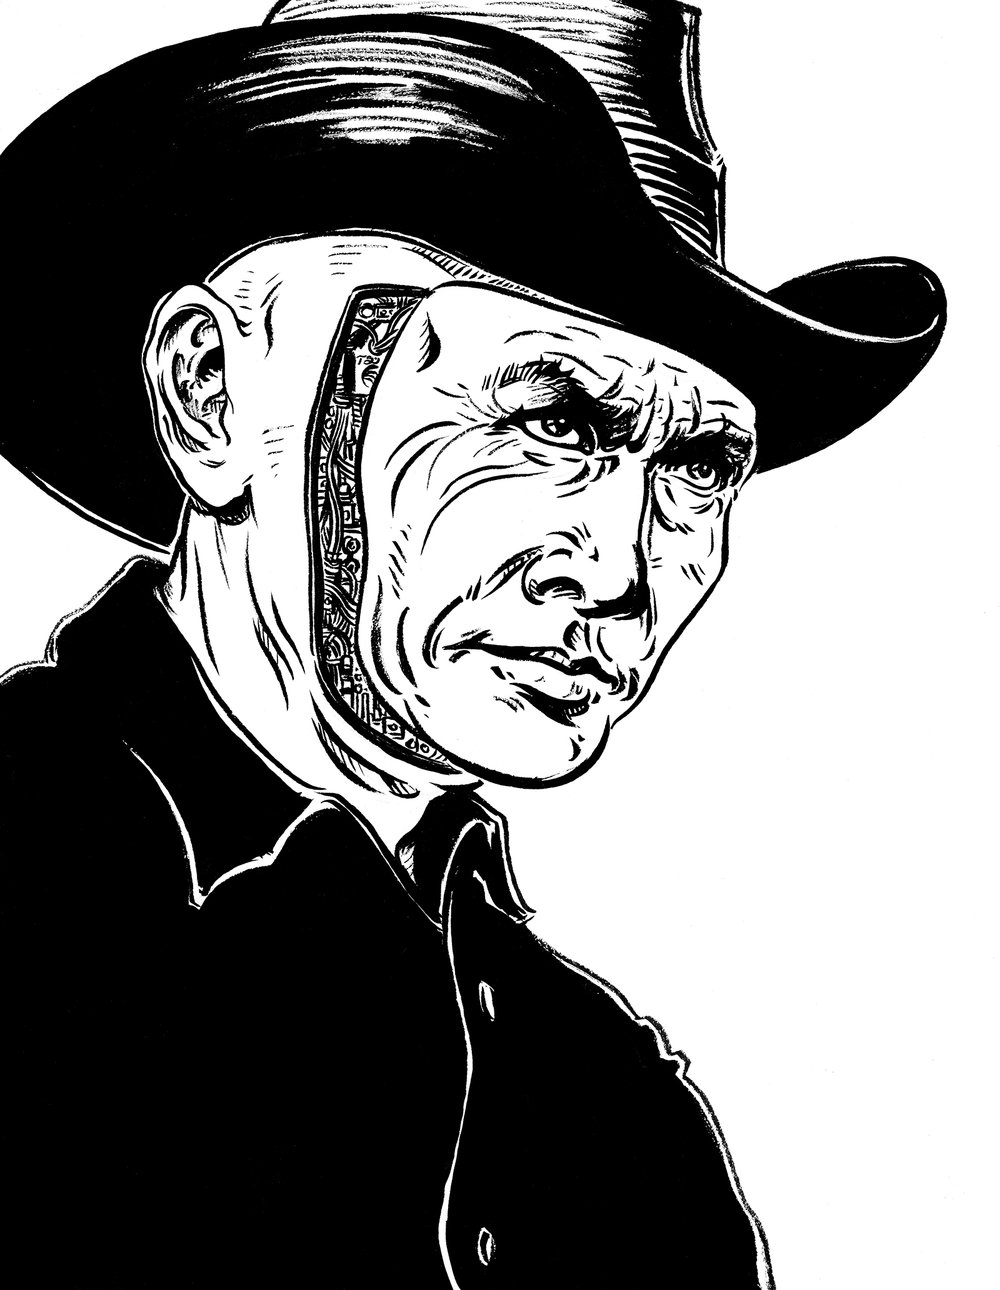 Inktober_day12_westworld.jpg